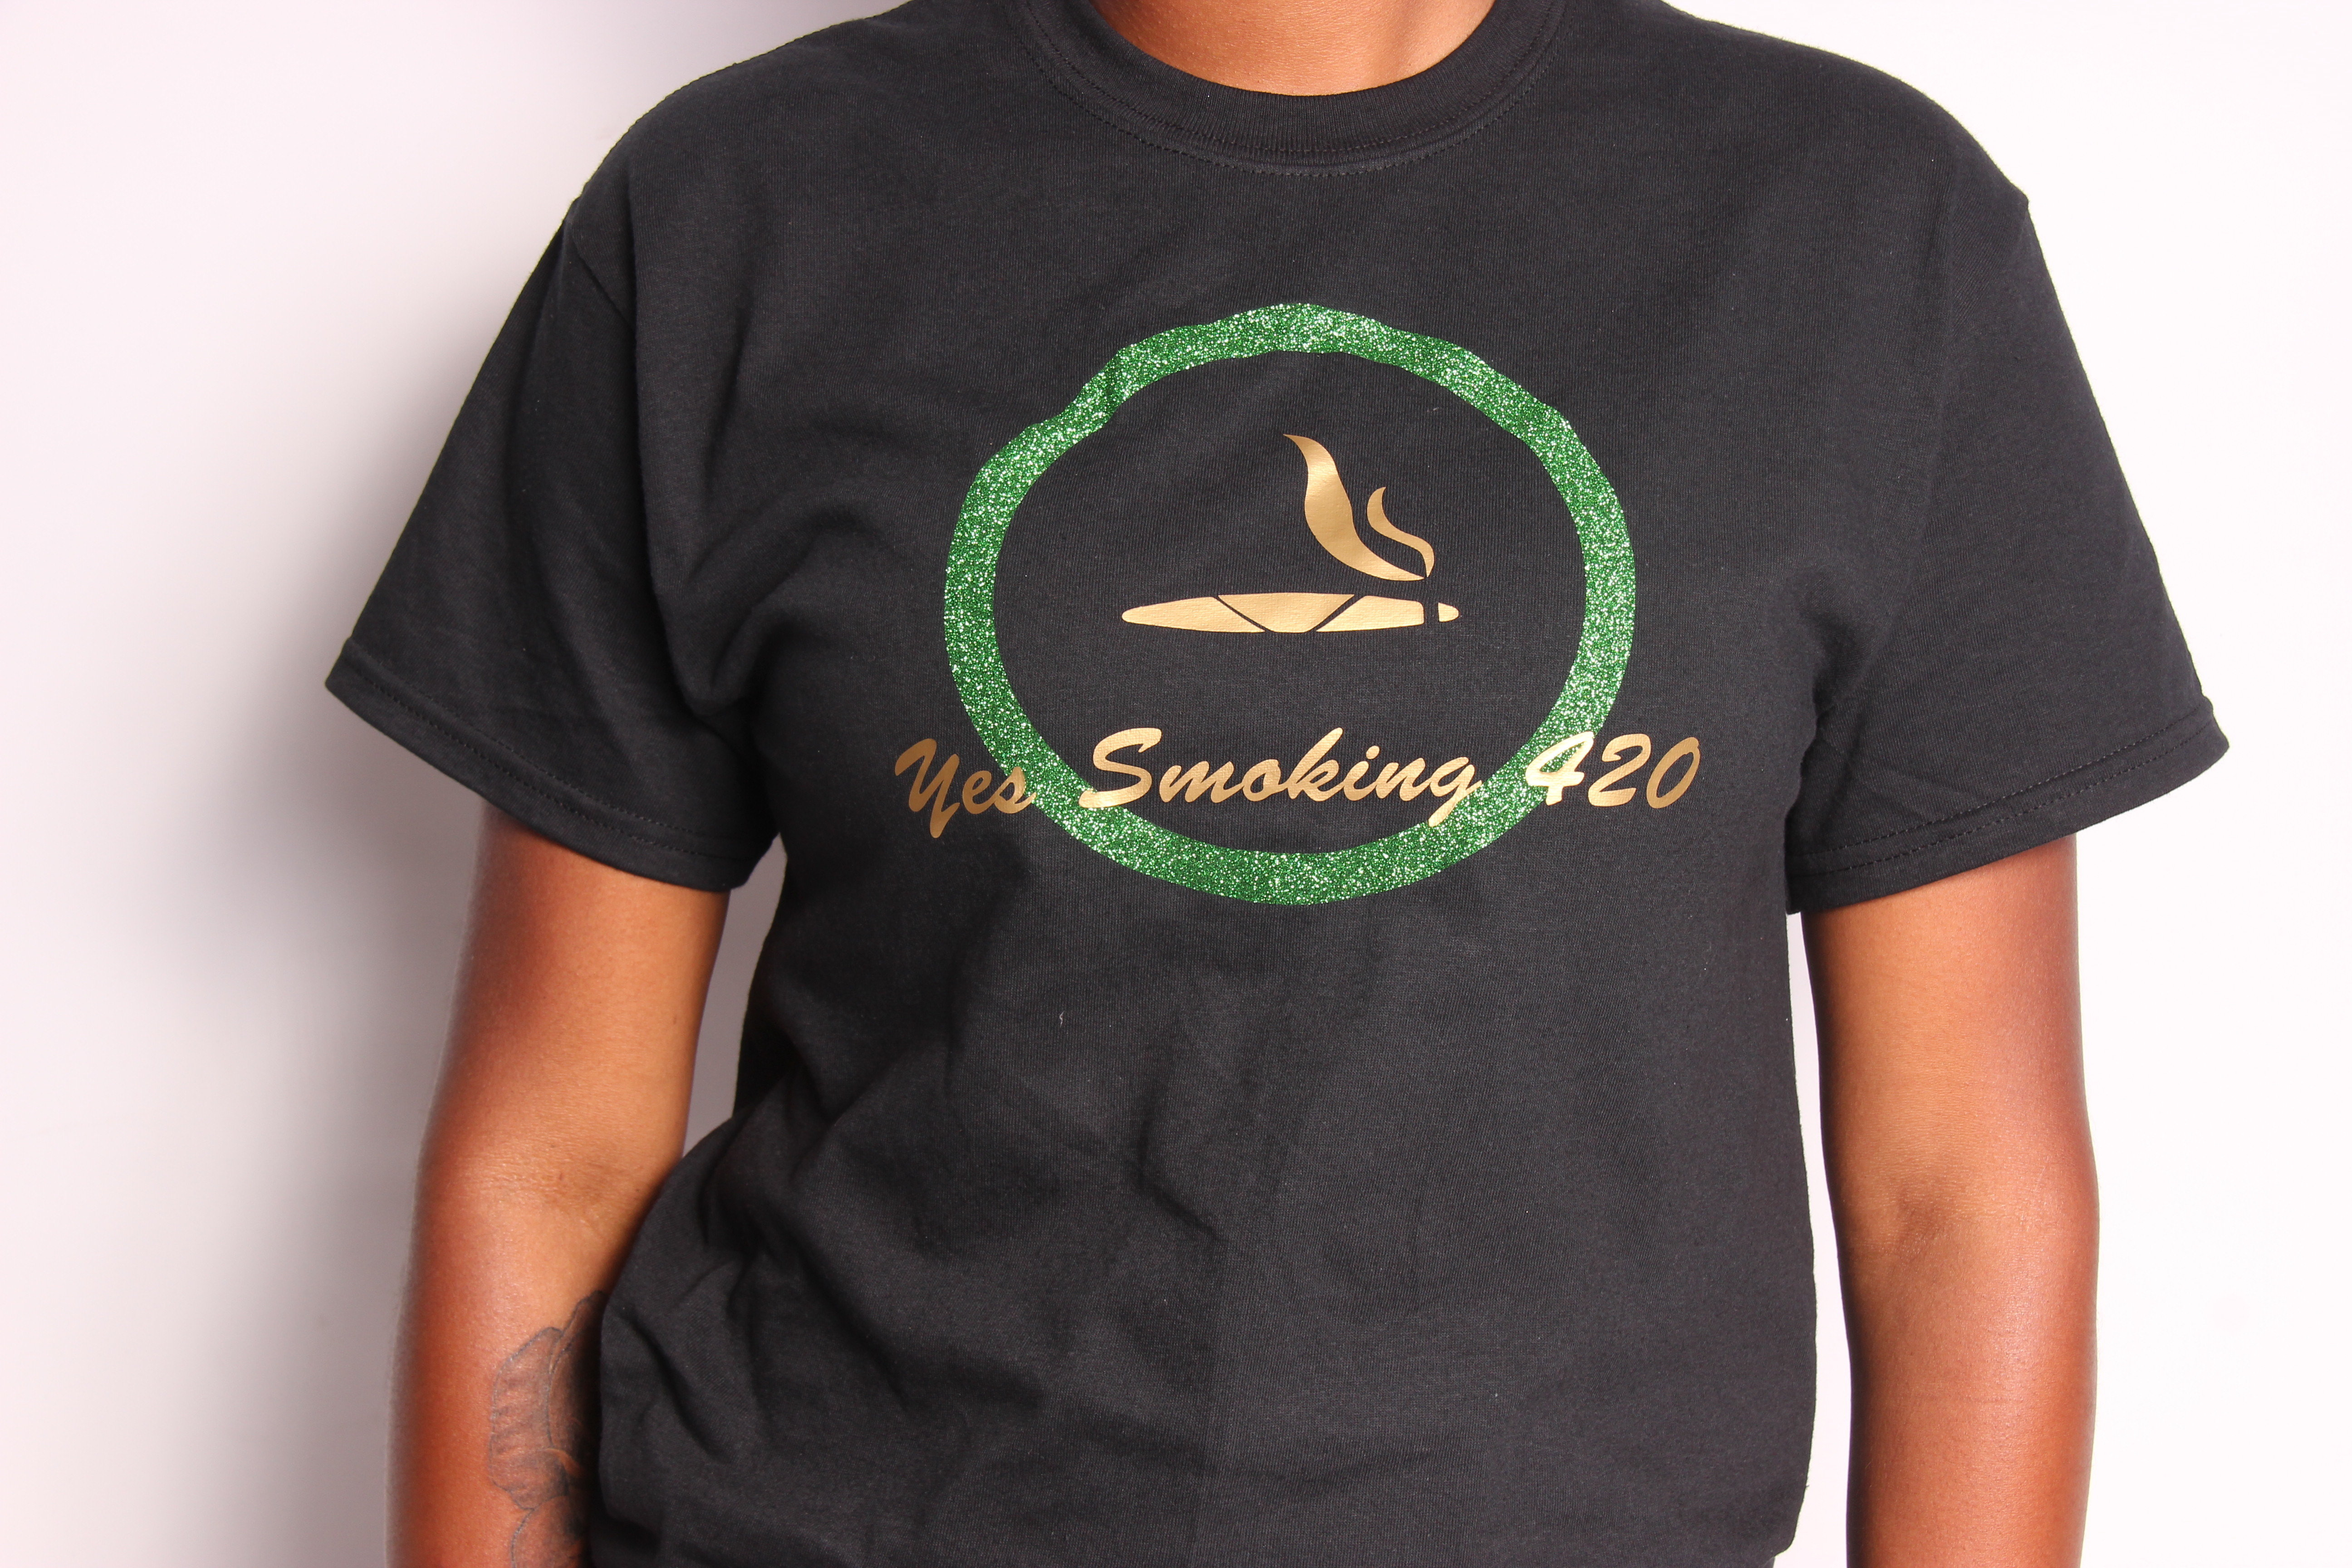 Yes Smoking 420 T-shirt ( grn glitter gold foil design )or grn/silver 00004